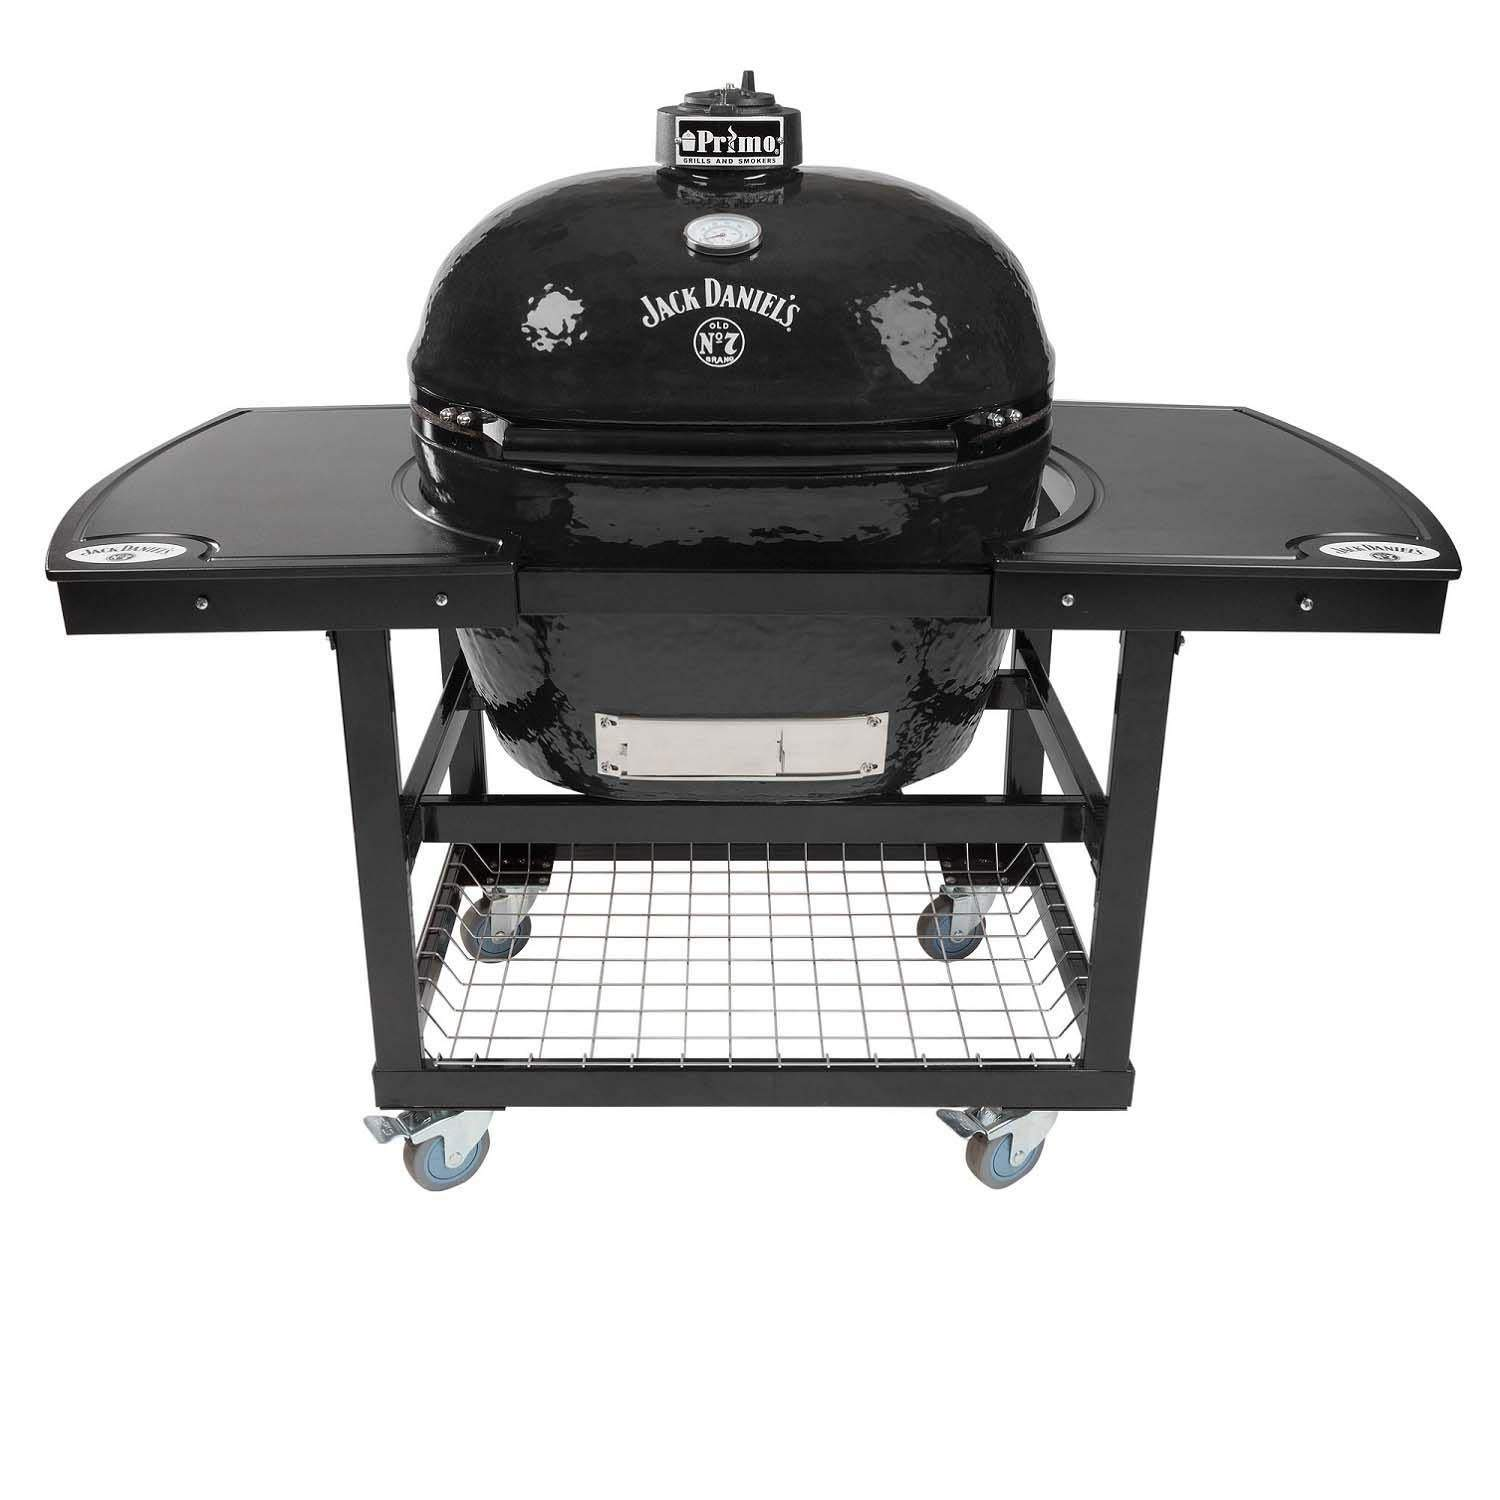 Primo Oval XL 400 Ceramic Smoker Grill Jack Daniel's Edition On Cart with 2-Piece Jack Daniel's Island Top by